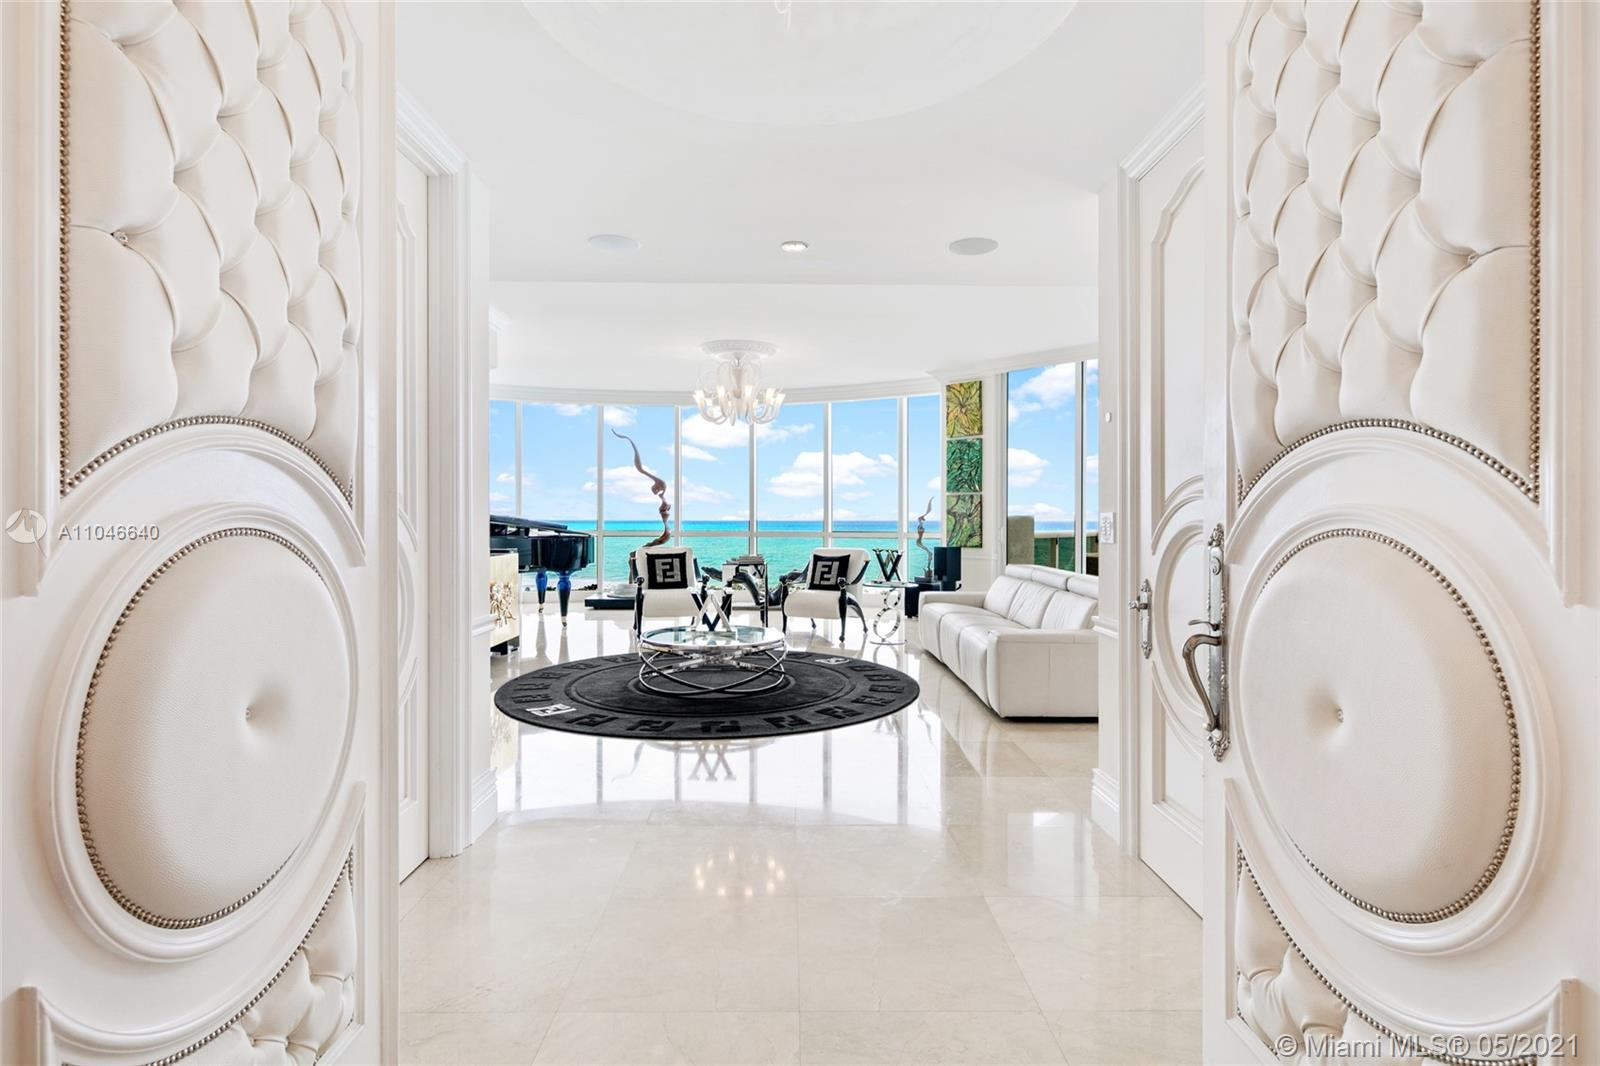 18101 Collins Ave, Unit #1109 Luxury Real Estate